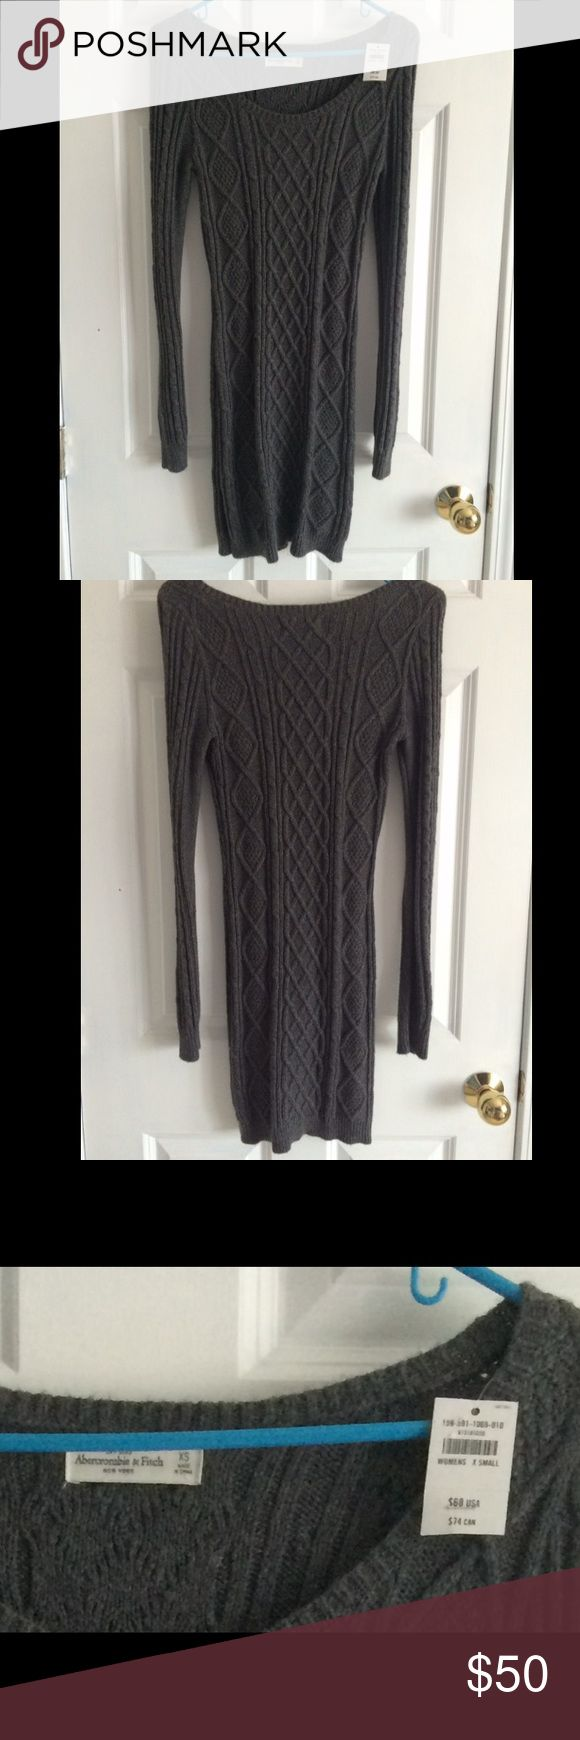 Gray Abercrombie and Fitch Sweater Dress Gray sweater dress from Abercrombie and Fitch, never worn, NWT, 35 inches long on the hanger from shoulder to the bottom, size xs, thick material. #sweaterdress #abercrombieandfitch #nwt #gray #sizexs Abercrombie & Fitch Dresses Long Sleeve